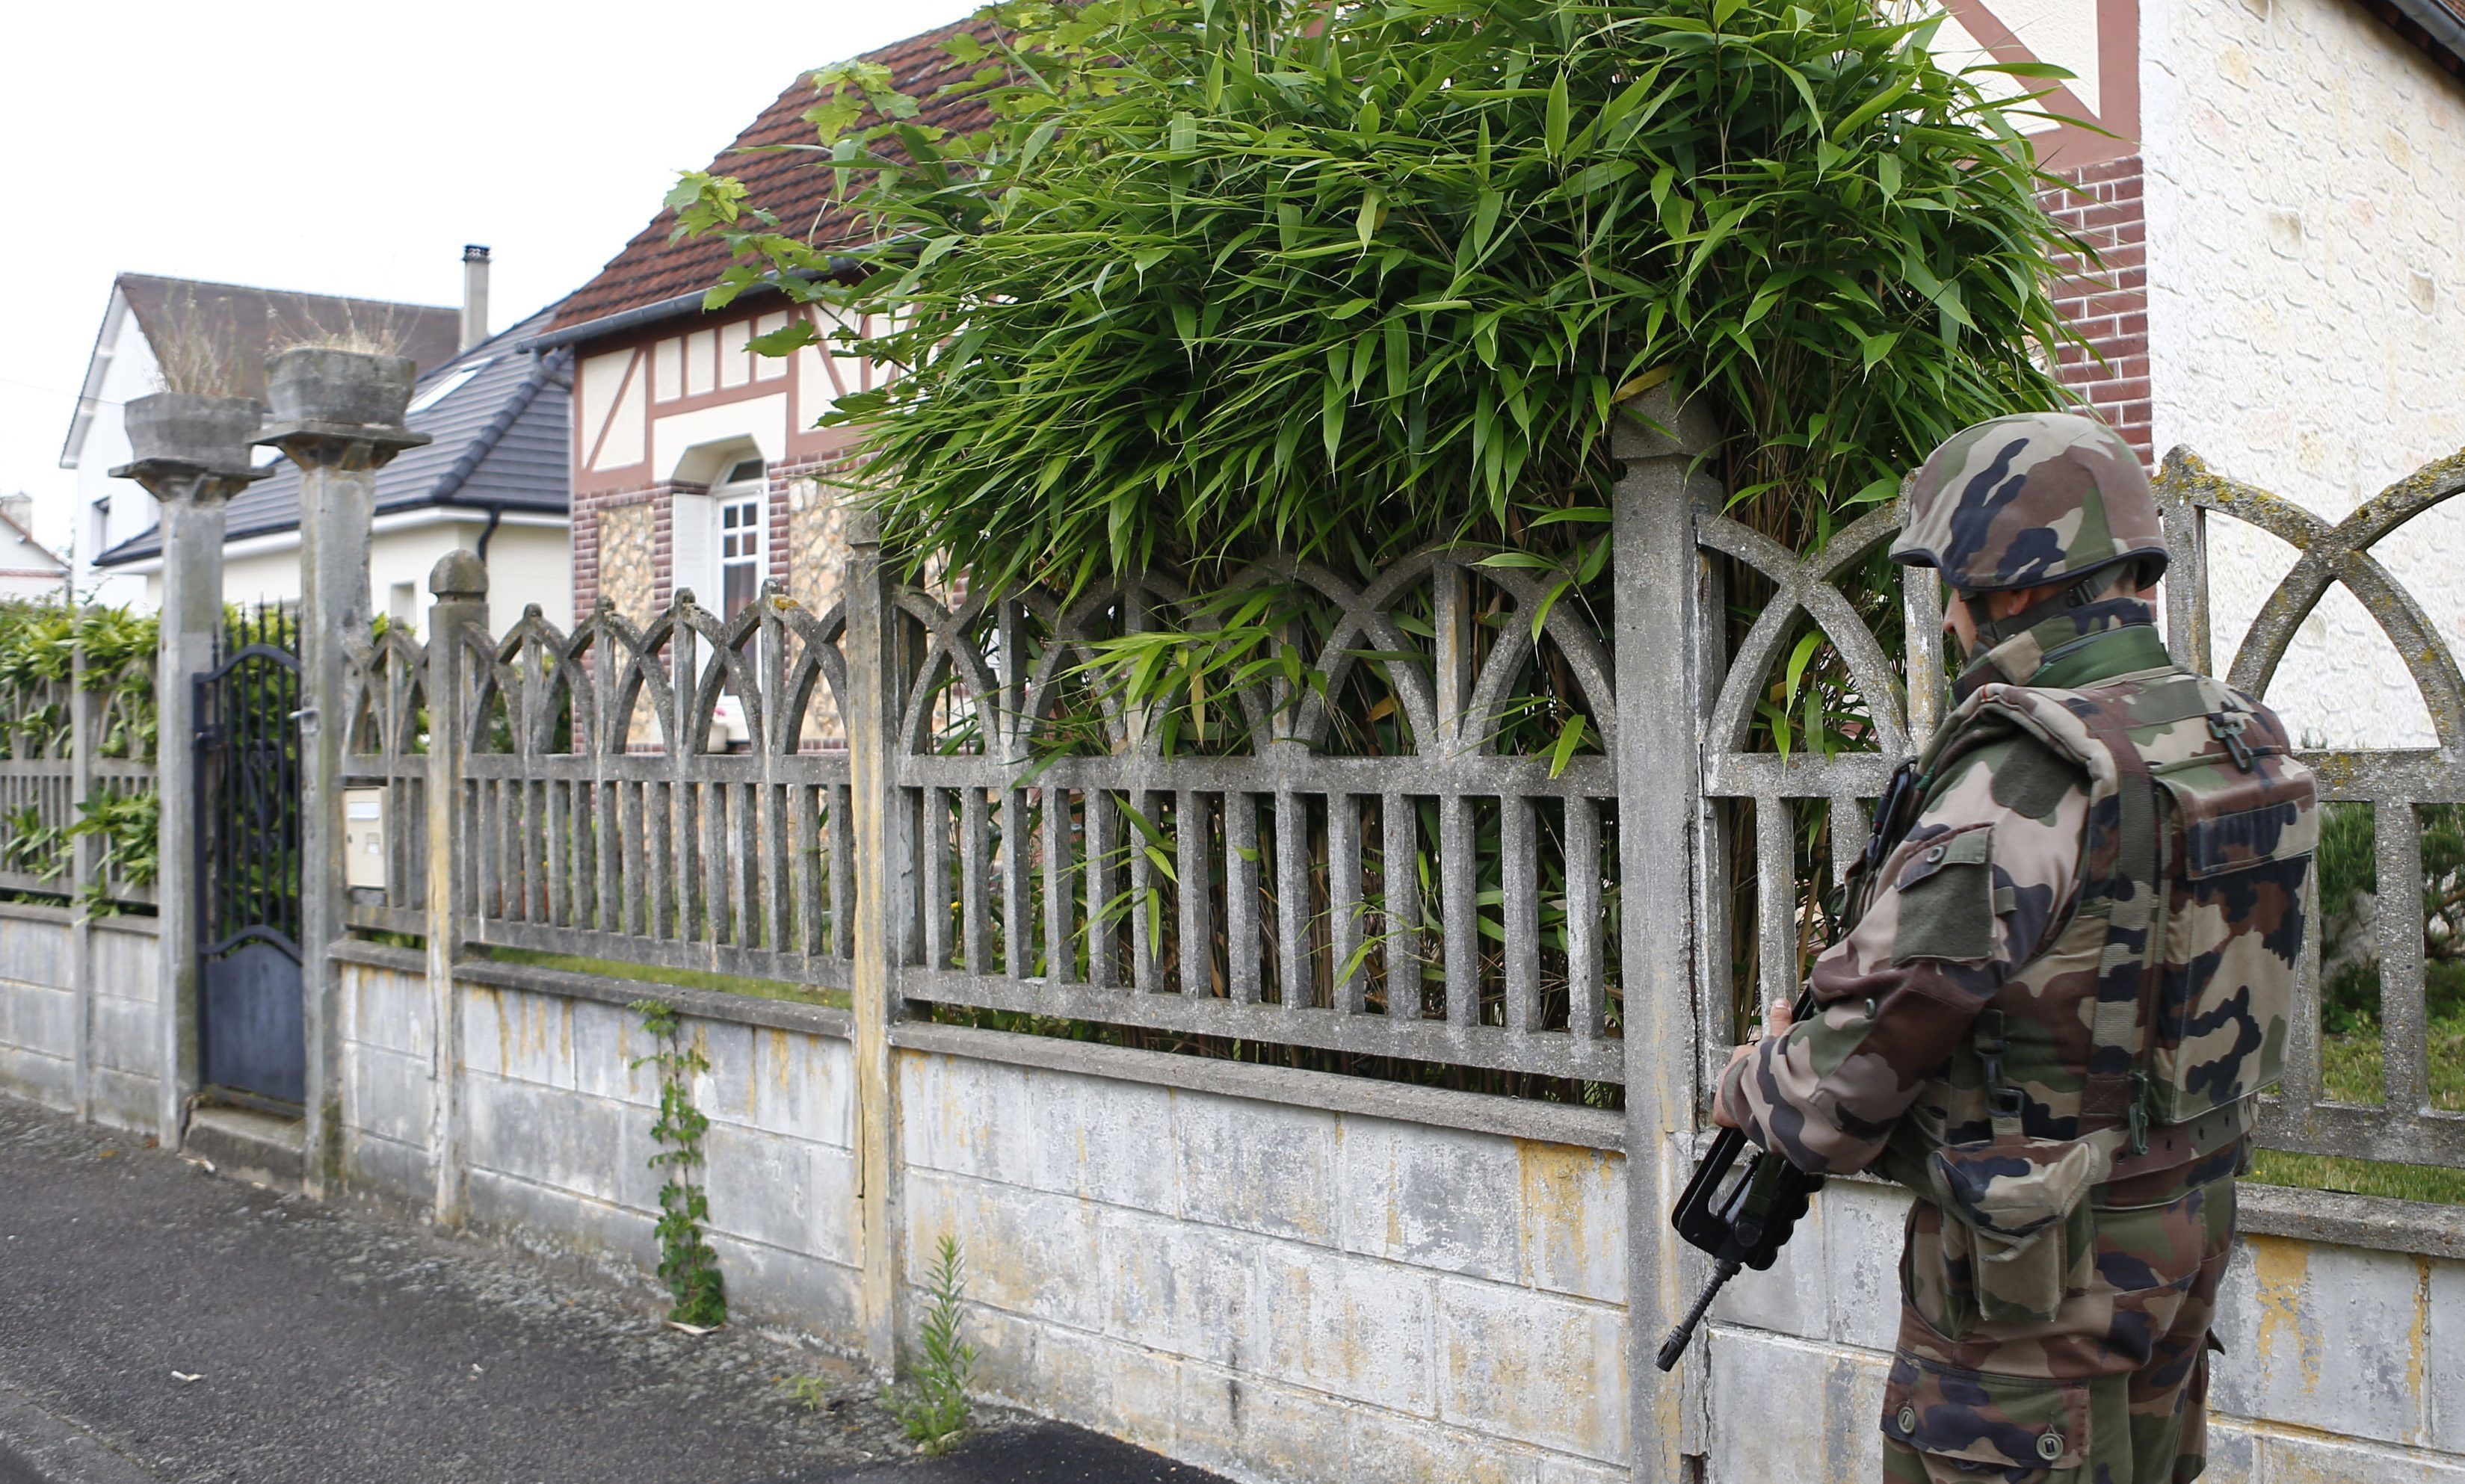 A French soldiers stands guard near the scene of the church terror attack in Saint-Etienne-du-Rouvray, Normandy.